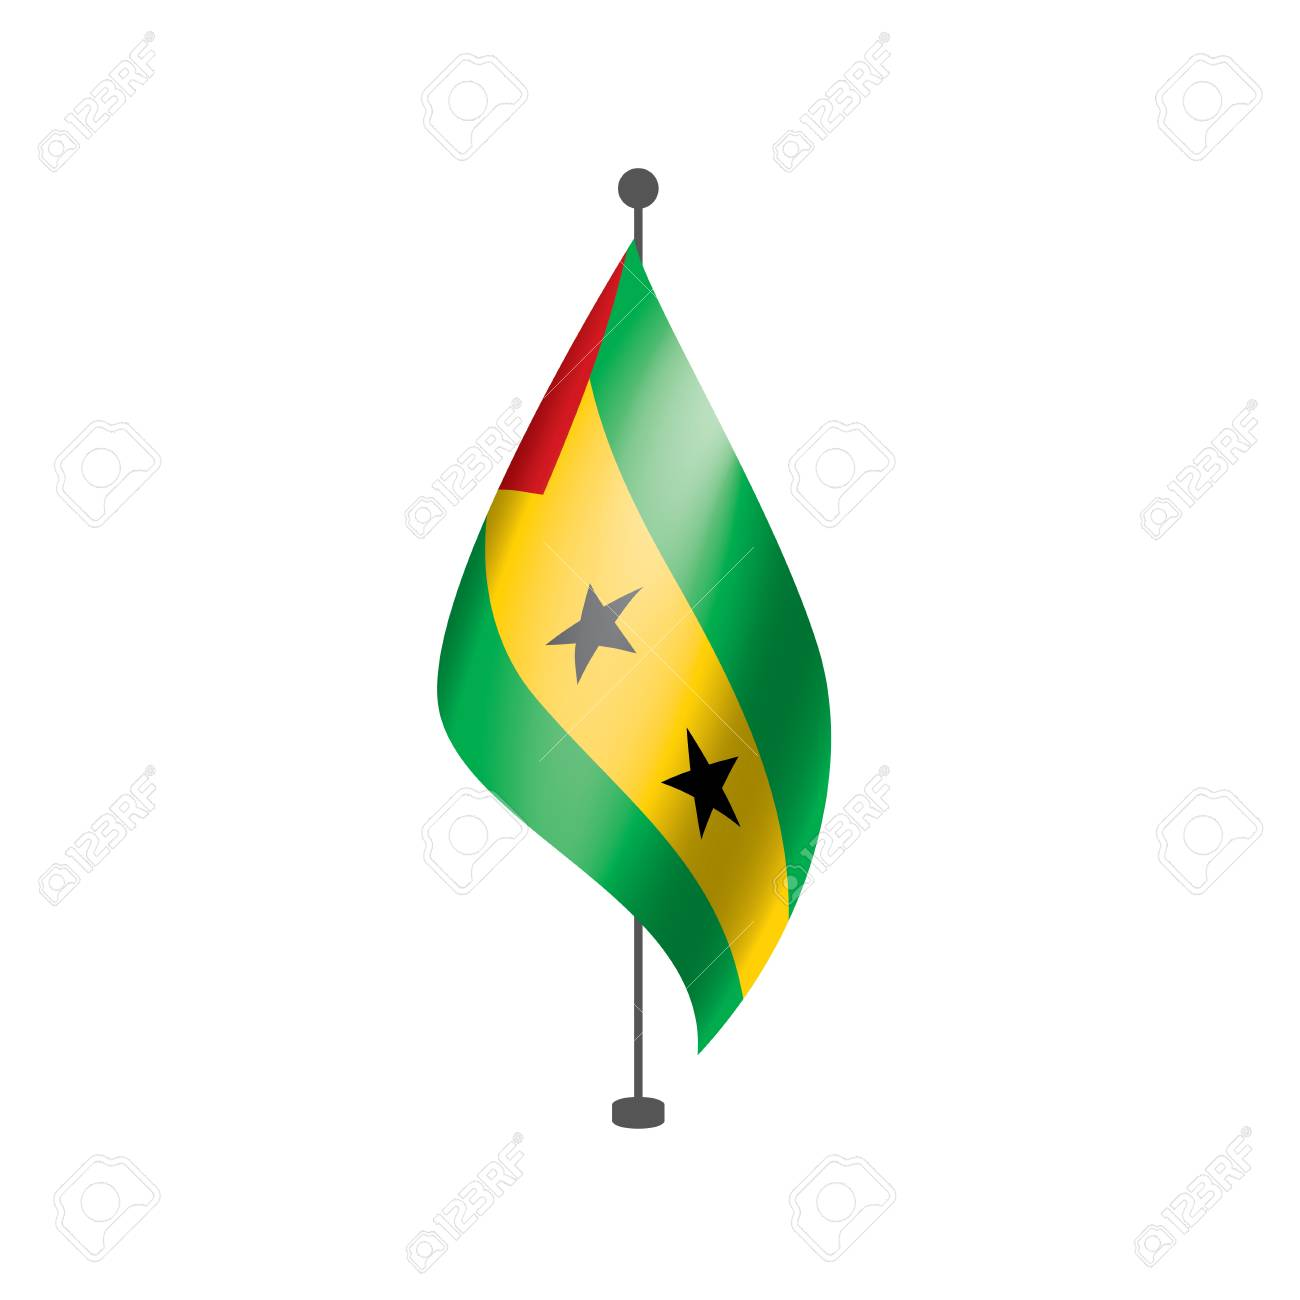 Sao Tome and Principe national flag, vector illustration on a white background - 112057846